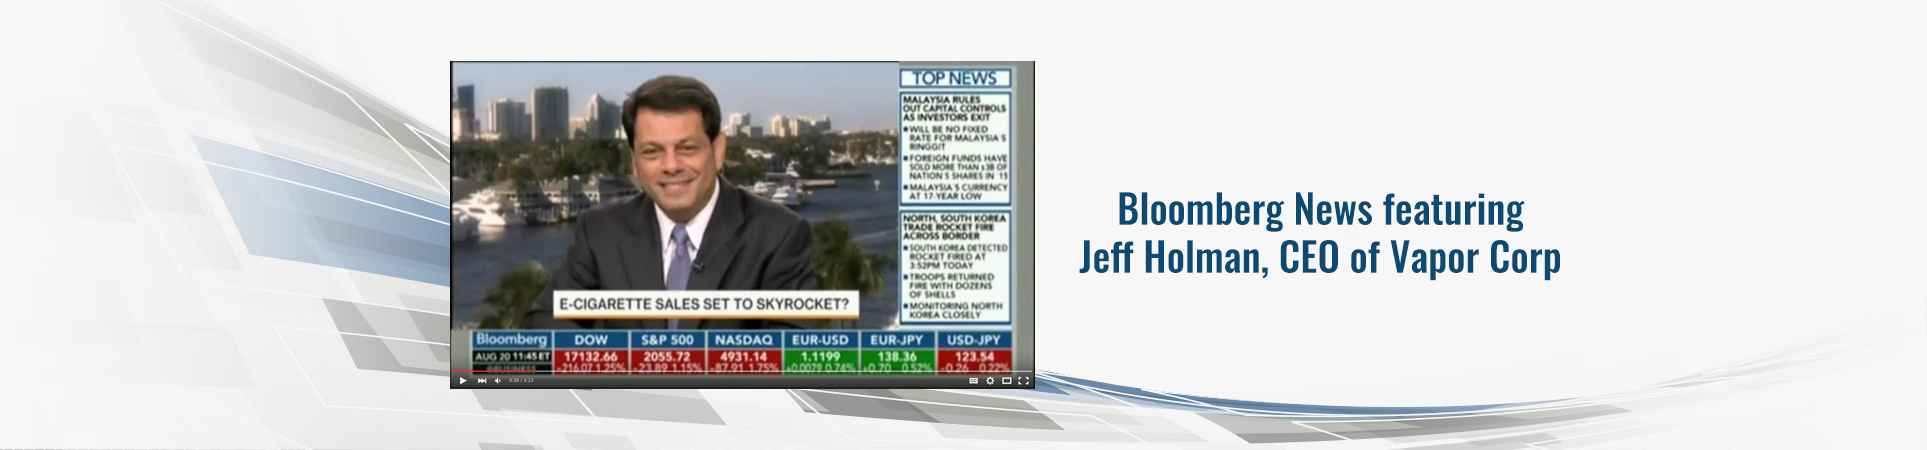 Bloomberg News featuring Jeff Holman, CEO of Vapor Corp